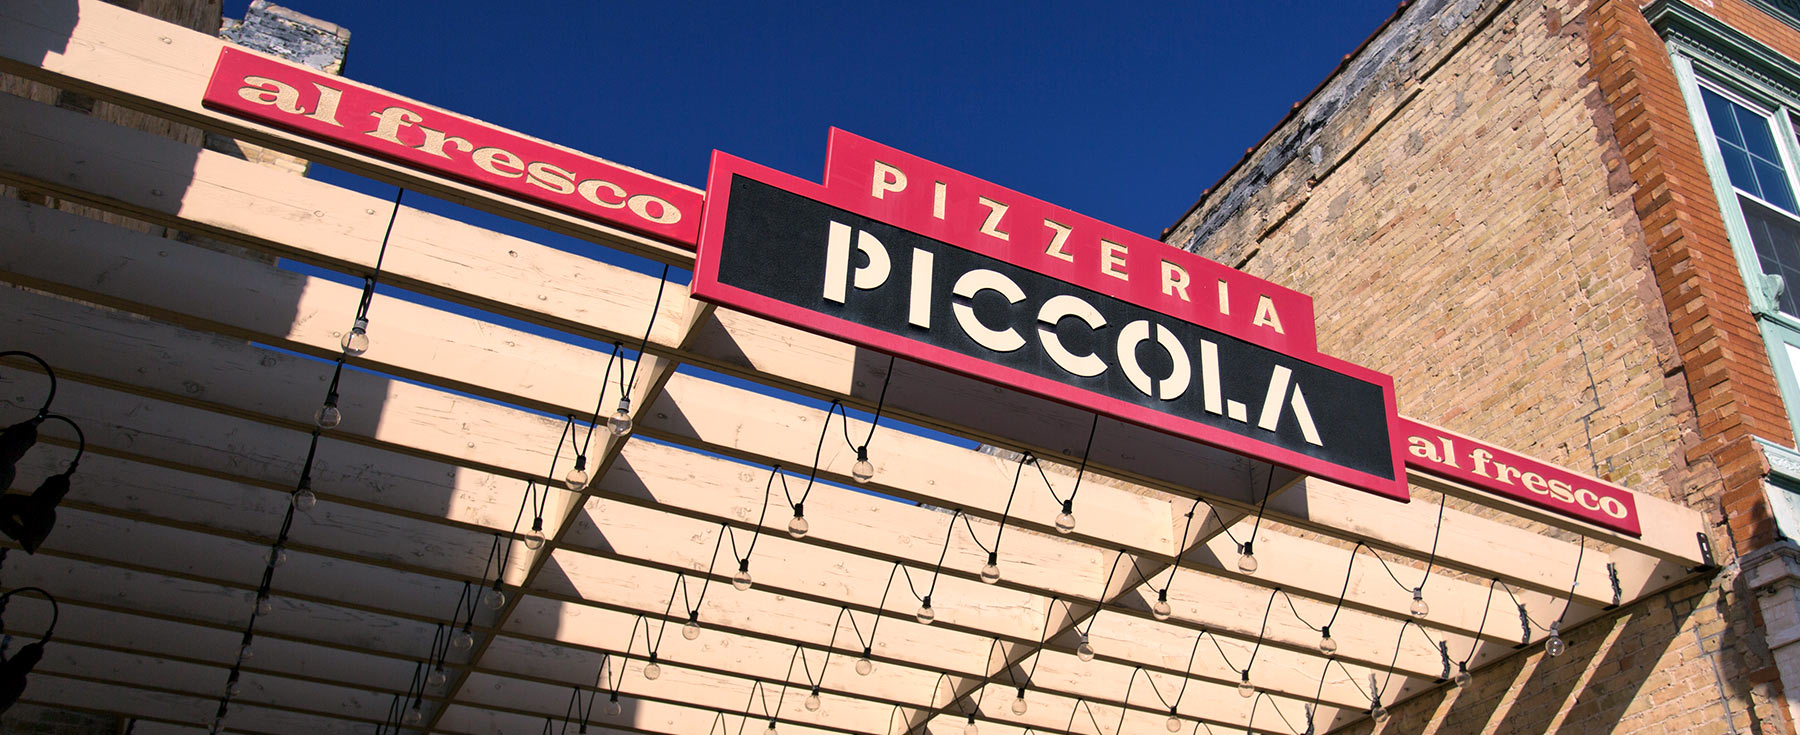 Pizzeria Piccola outdoor sign